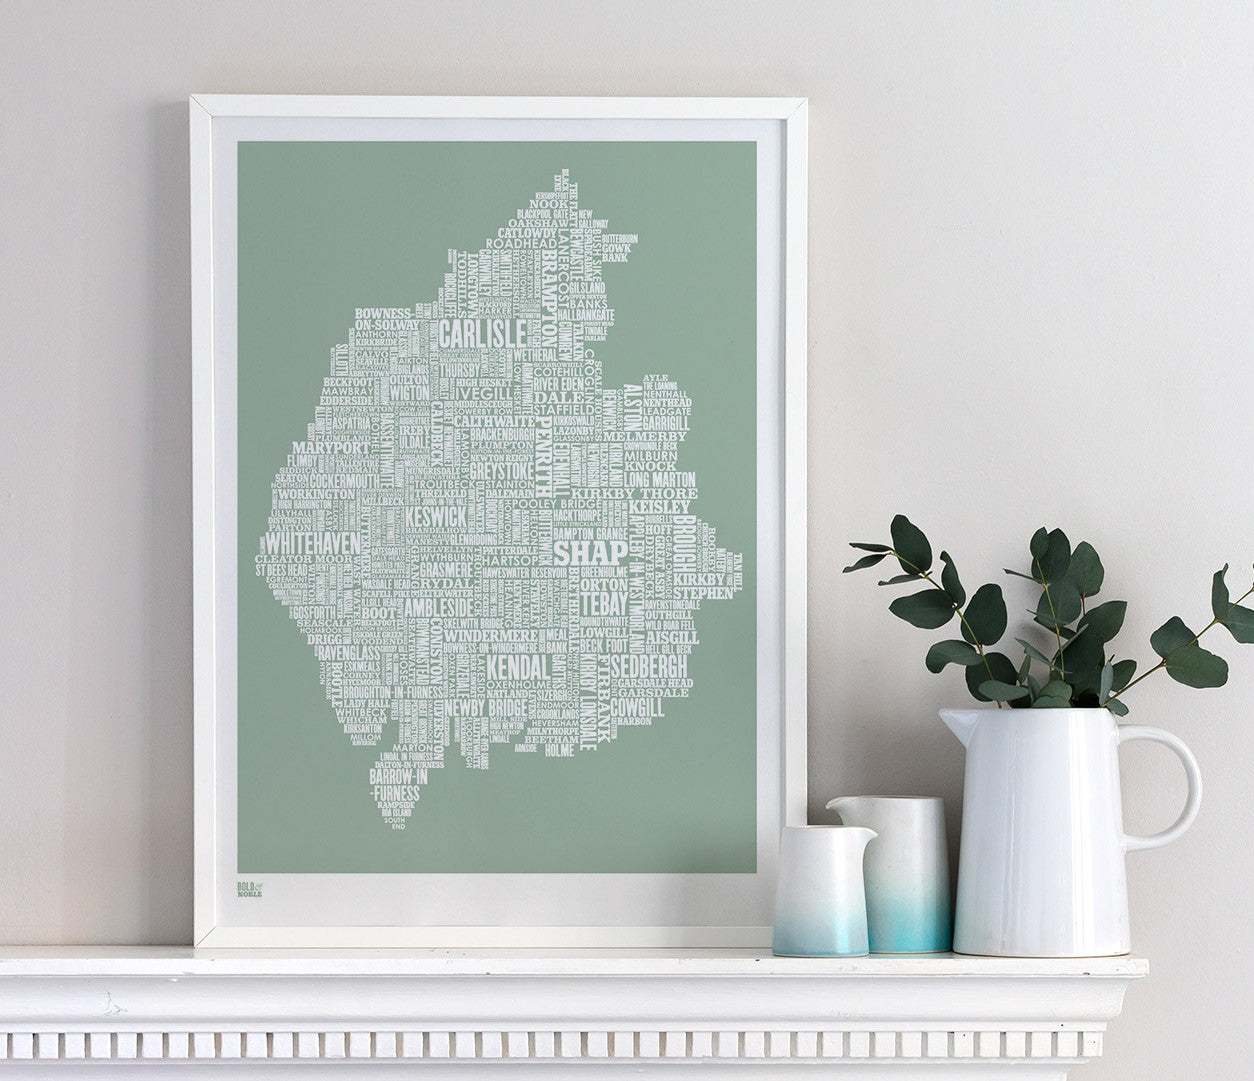 Wall art ideas, economical screen prints, Cumbria type map in seafoam green